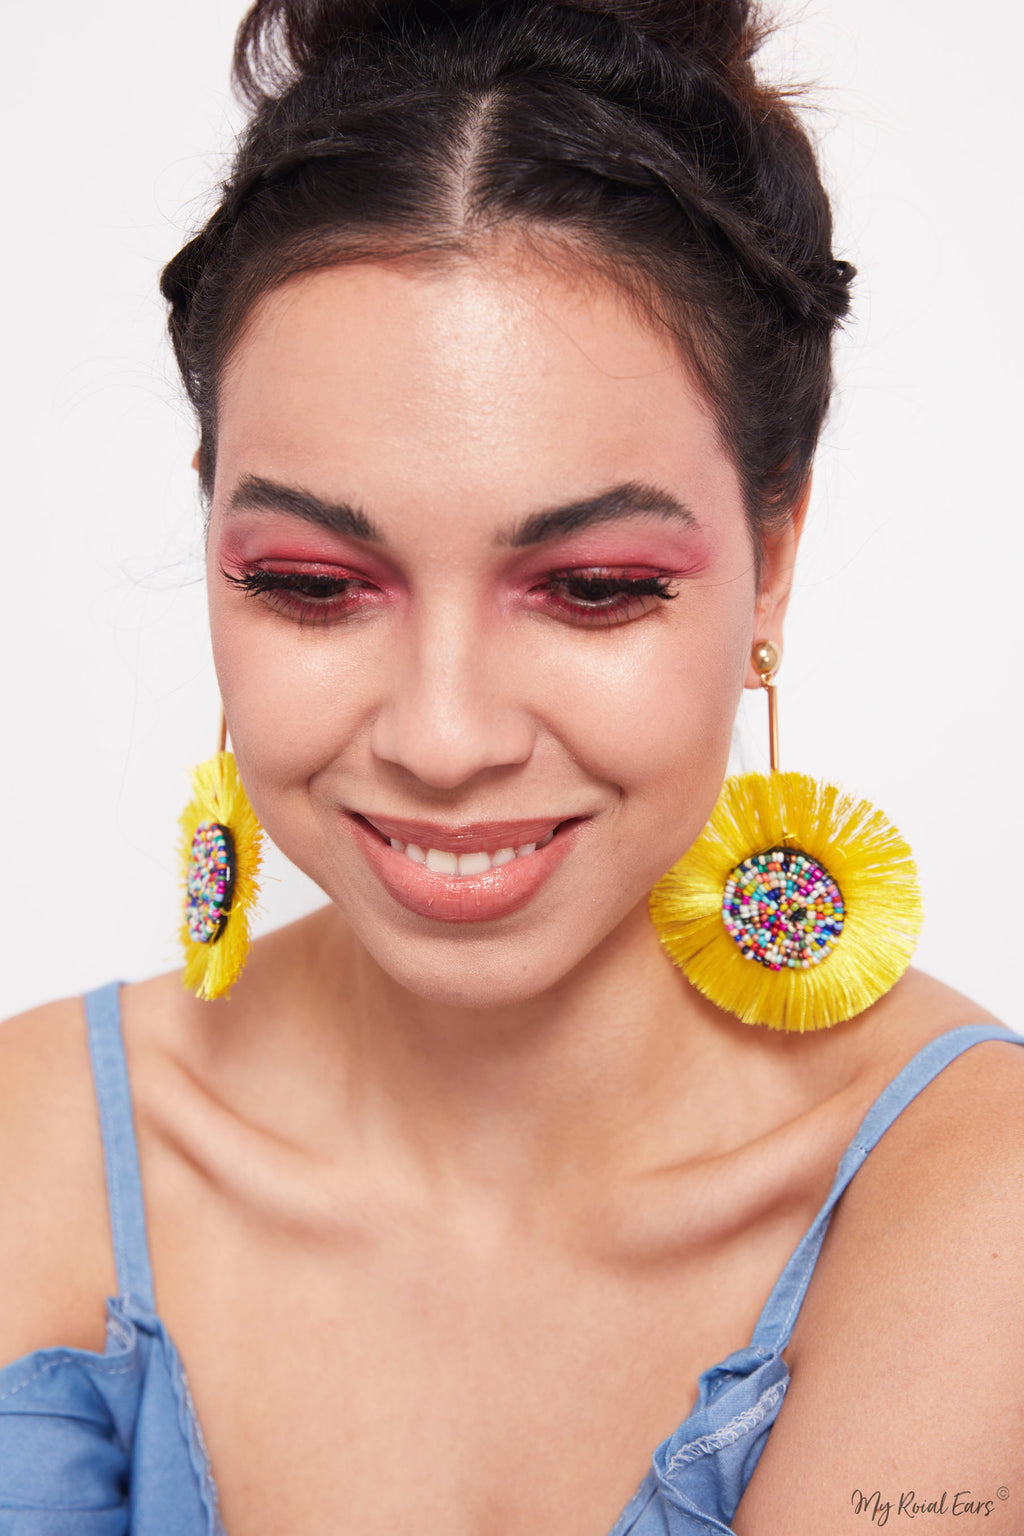 Bottle Brush- candy shaped tassel earrings - My Roial Ears LTD